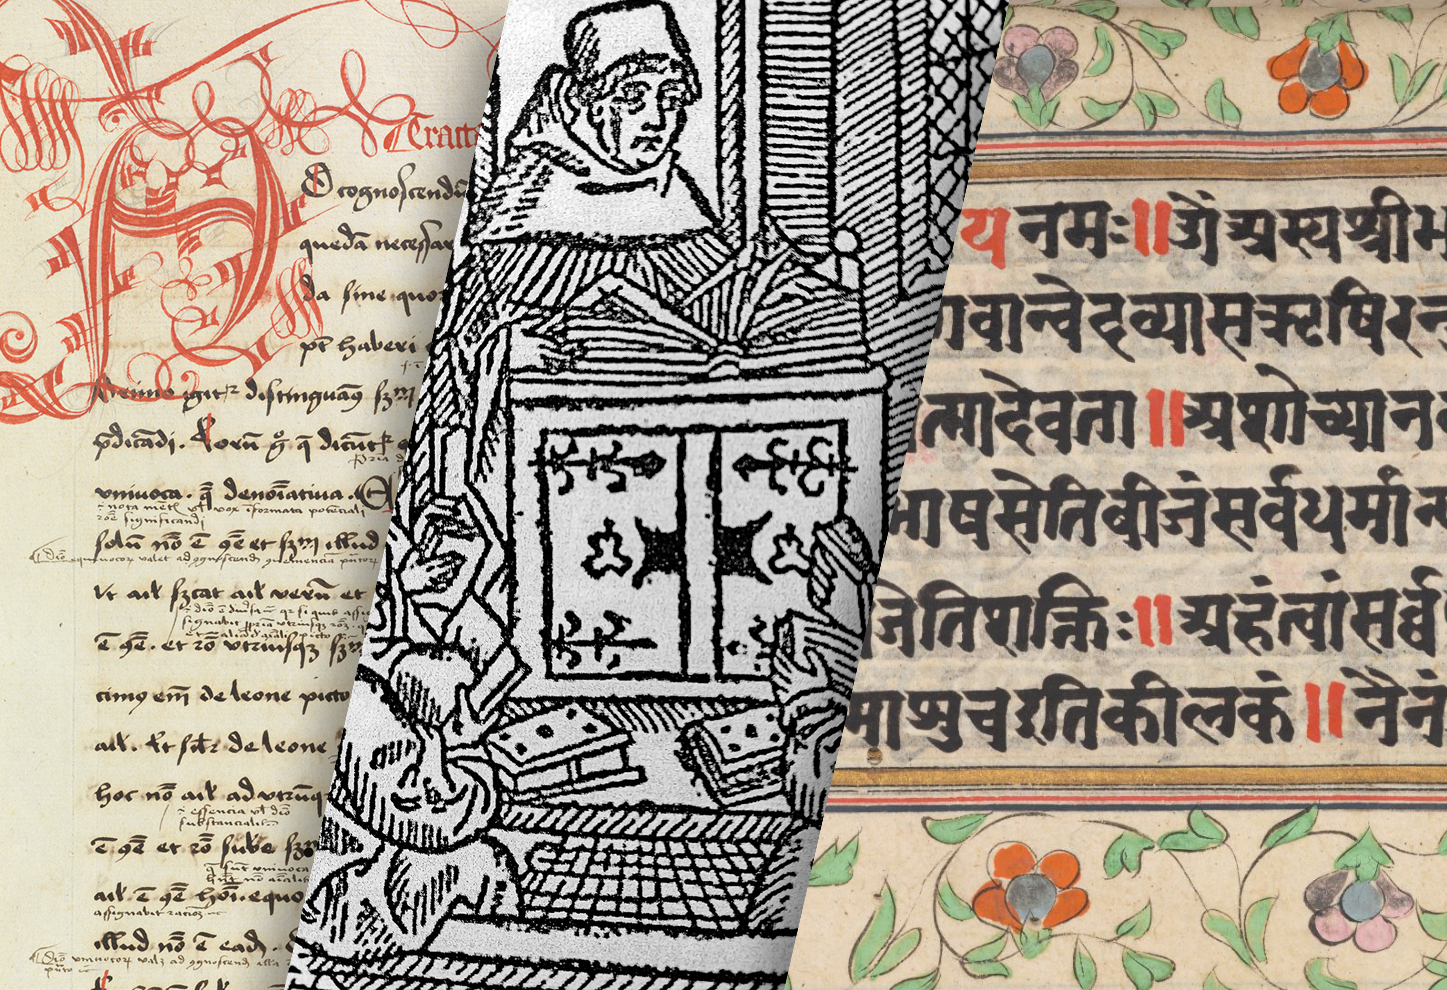 compilation of a Latin medieval manuscript, a woodcut depiction of a scholar teaching students, and a manuscript page of the Bhagavad Gita, written in Sanskrit in the 18th century